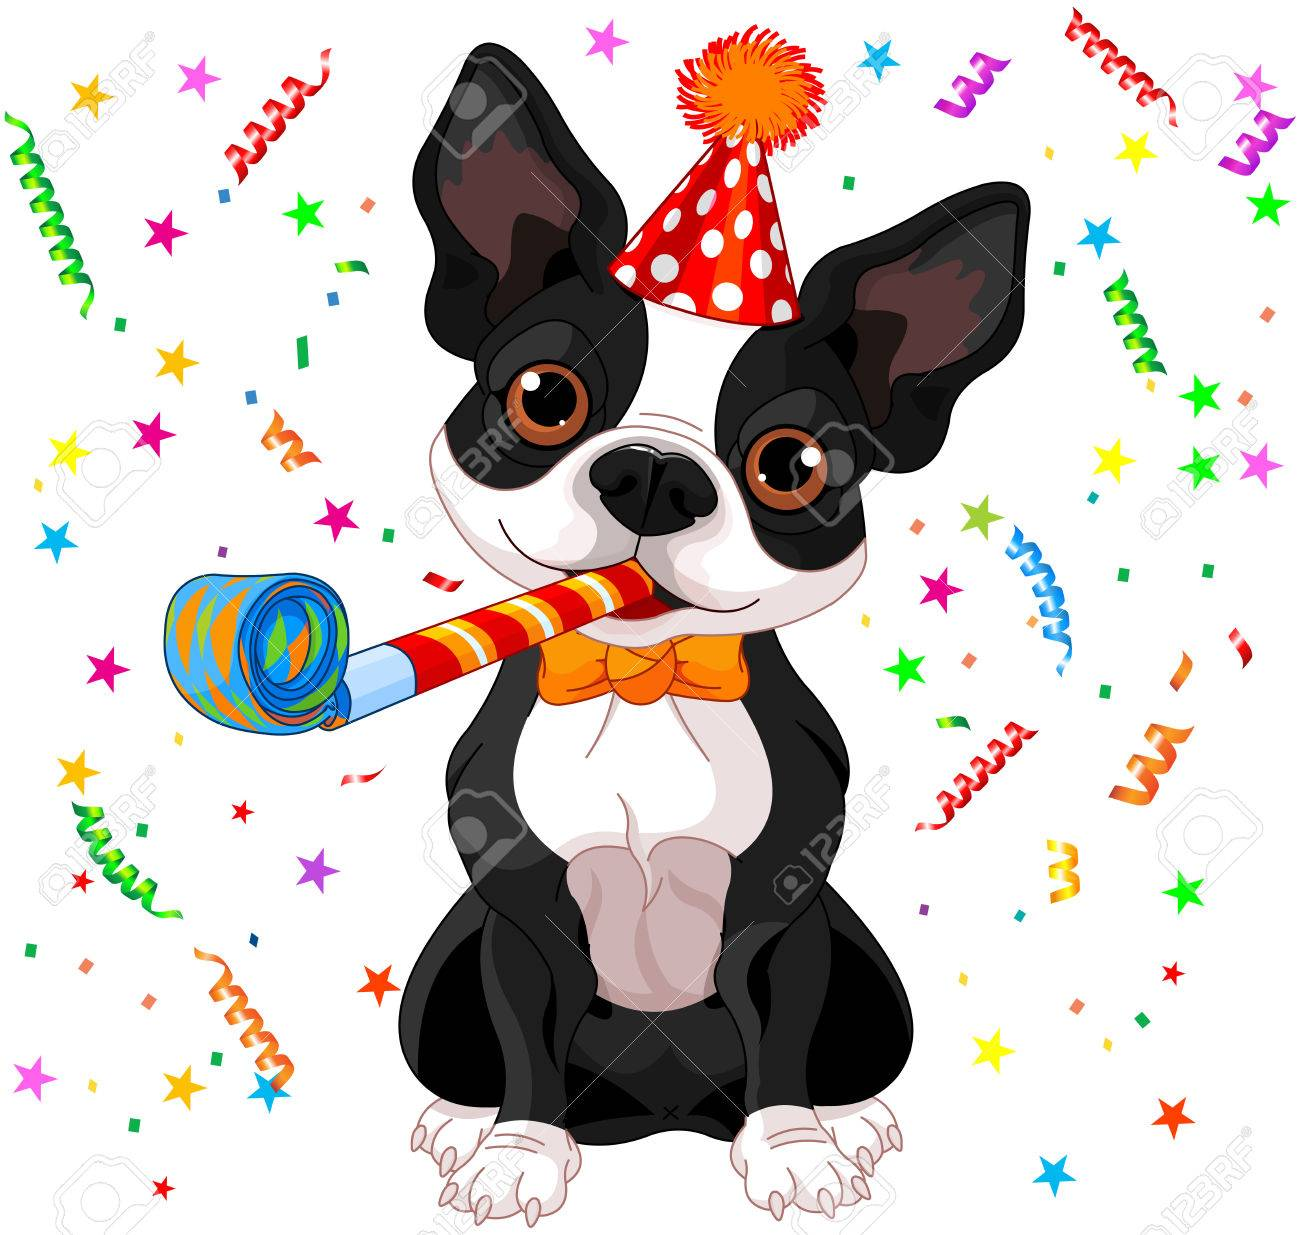 Brevet agility 35588778-illustration-of-cute-boston-terrier-celebrating